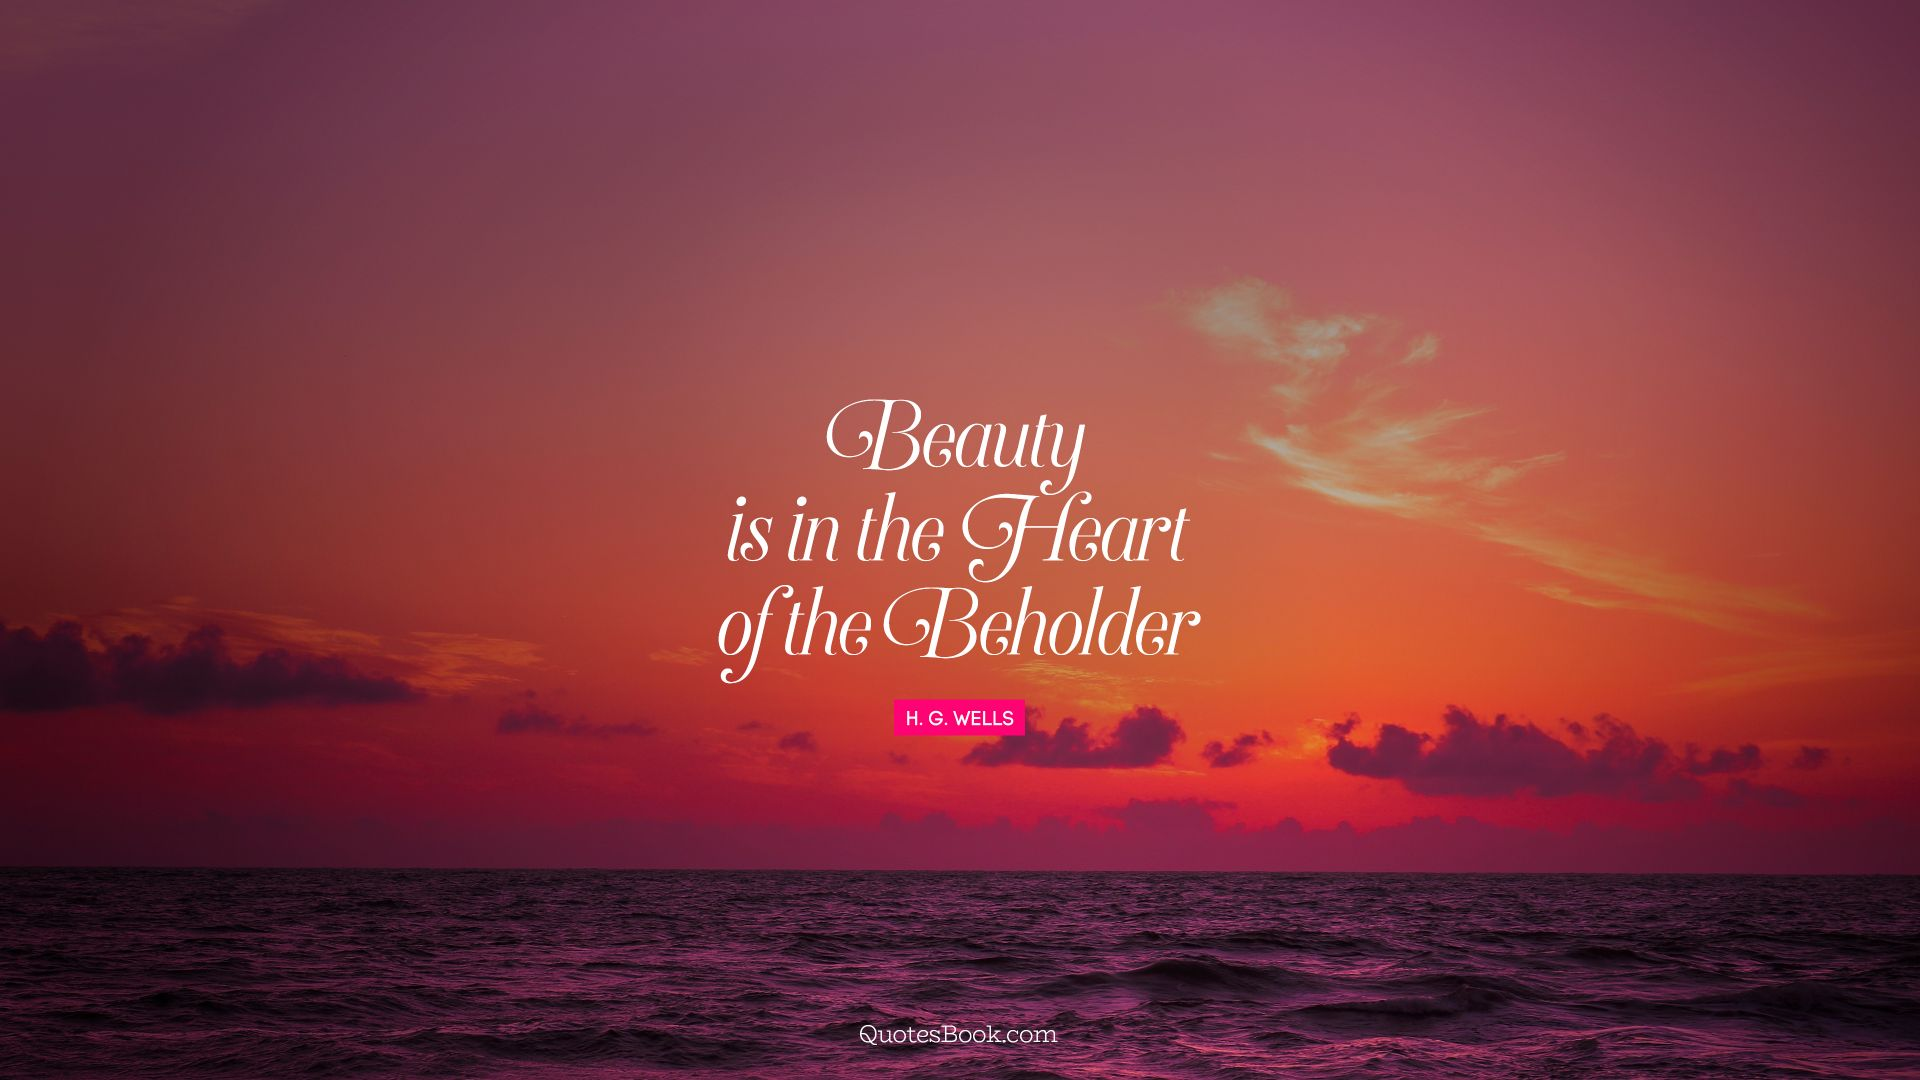 Beauty is in the heart of the beholder. - Quote by H. G. Wells